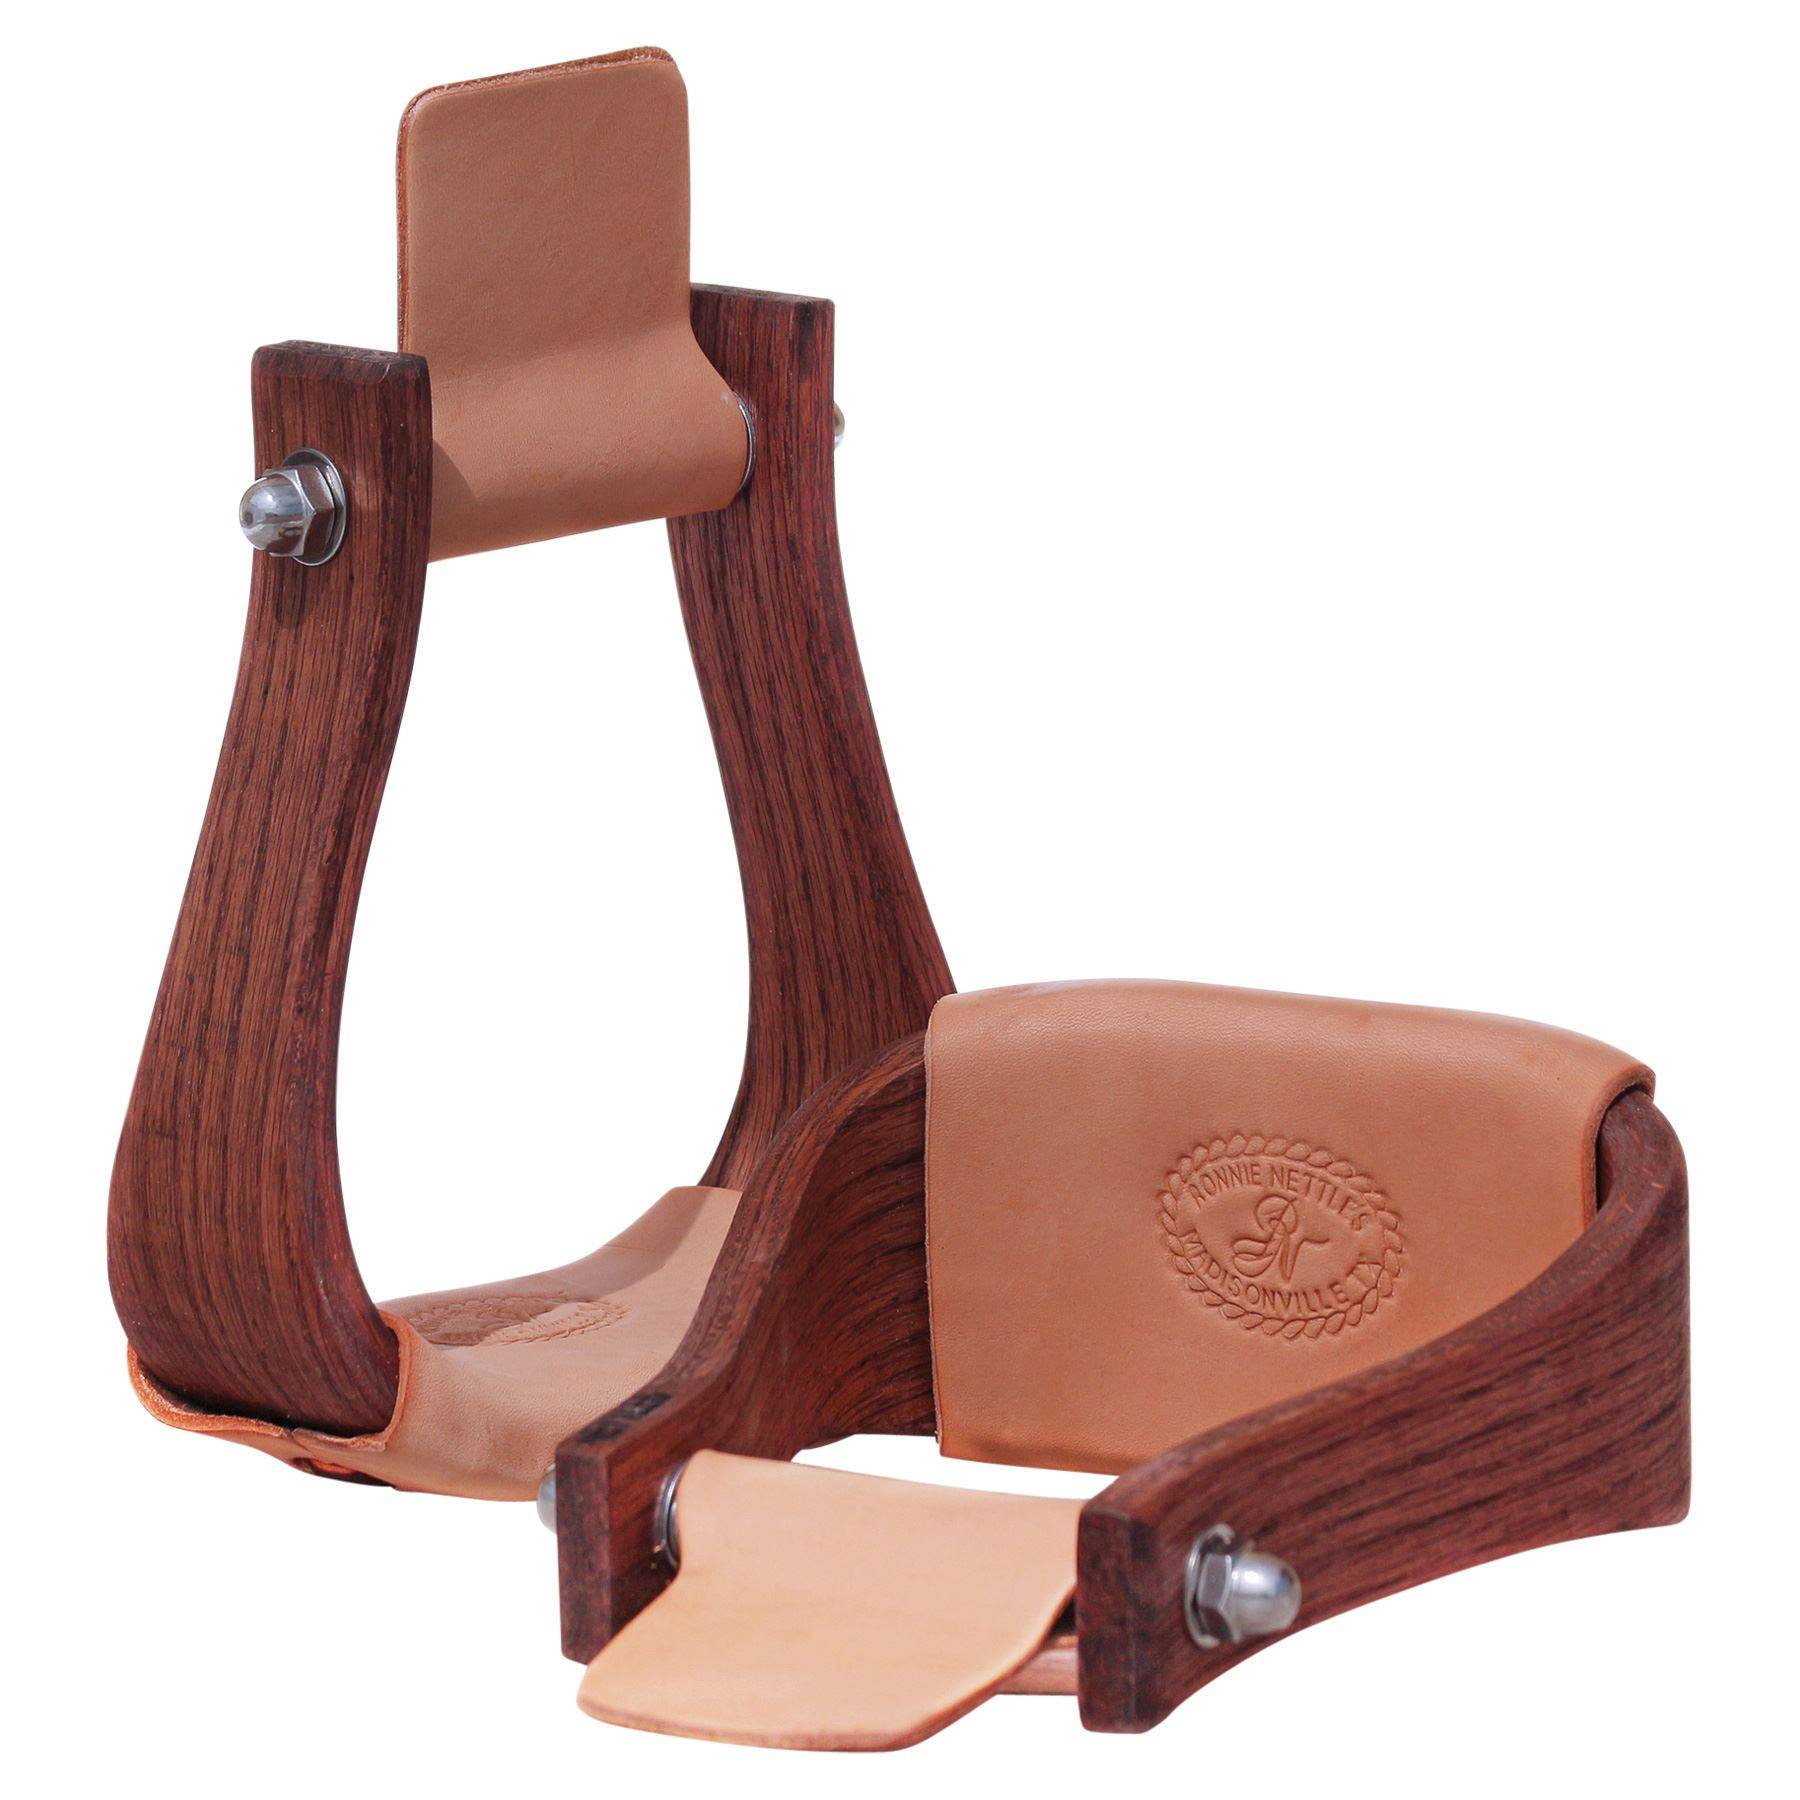 "Nettles 2"" The Duke Wooden Western Stirrups"